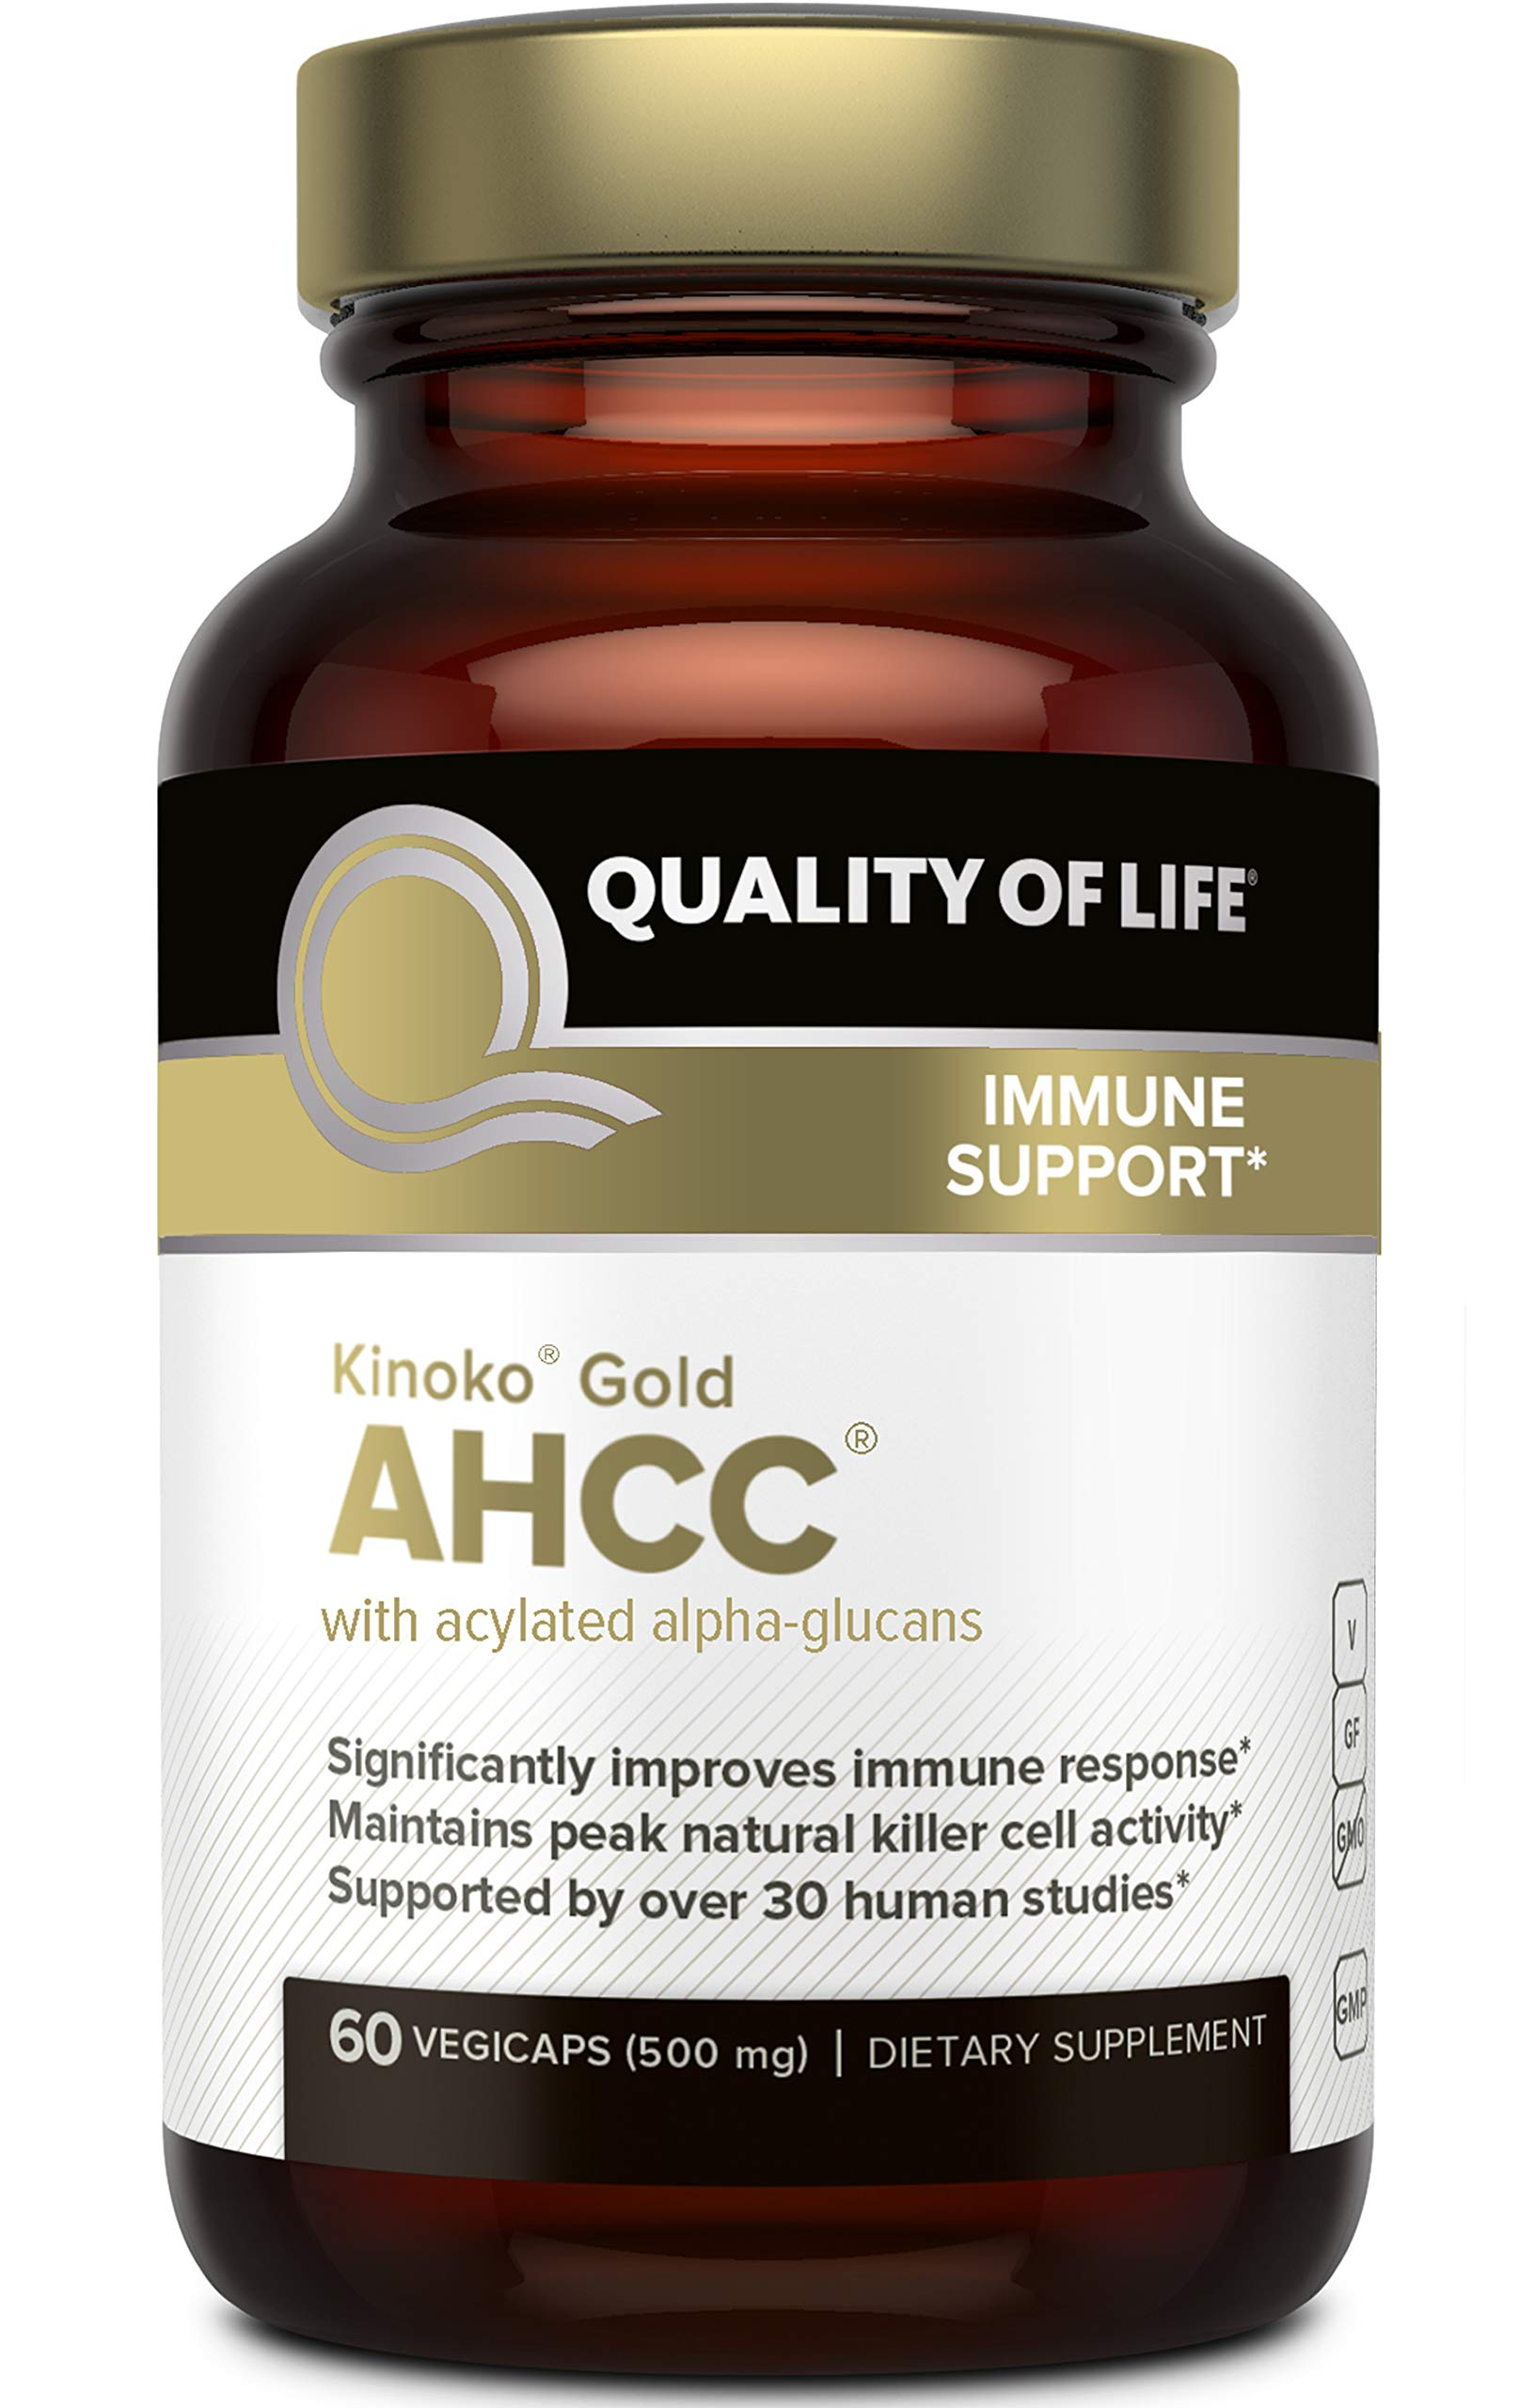 Premium Kinoko Gold AHCC Supplement-500mg of AHCC per Capsule-Supports Immune Health, Liver Function, Maintains Natural Killer Cell Activity & Enhances Cytokine Production-60 Veggie Capsules by Quality of Life (Image #1)